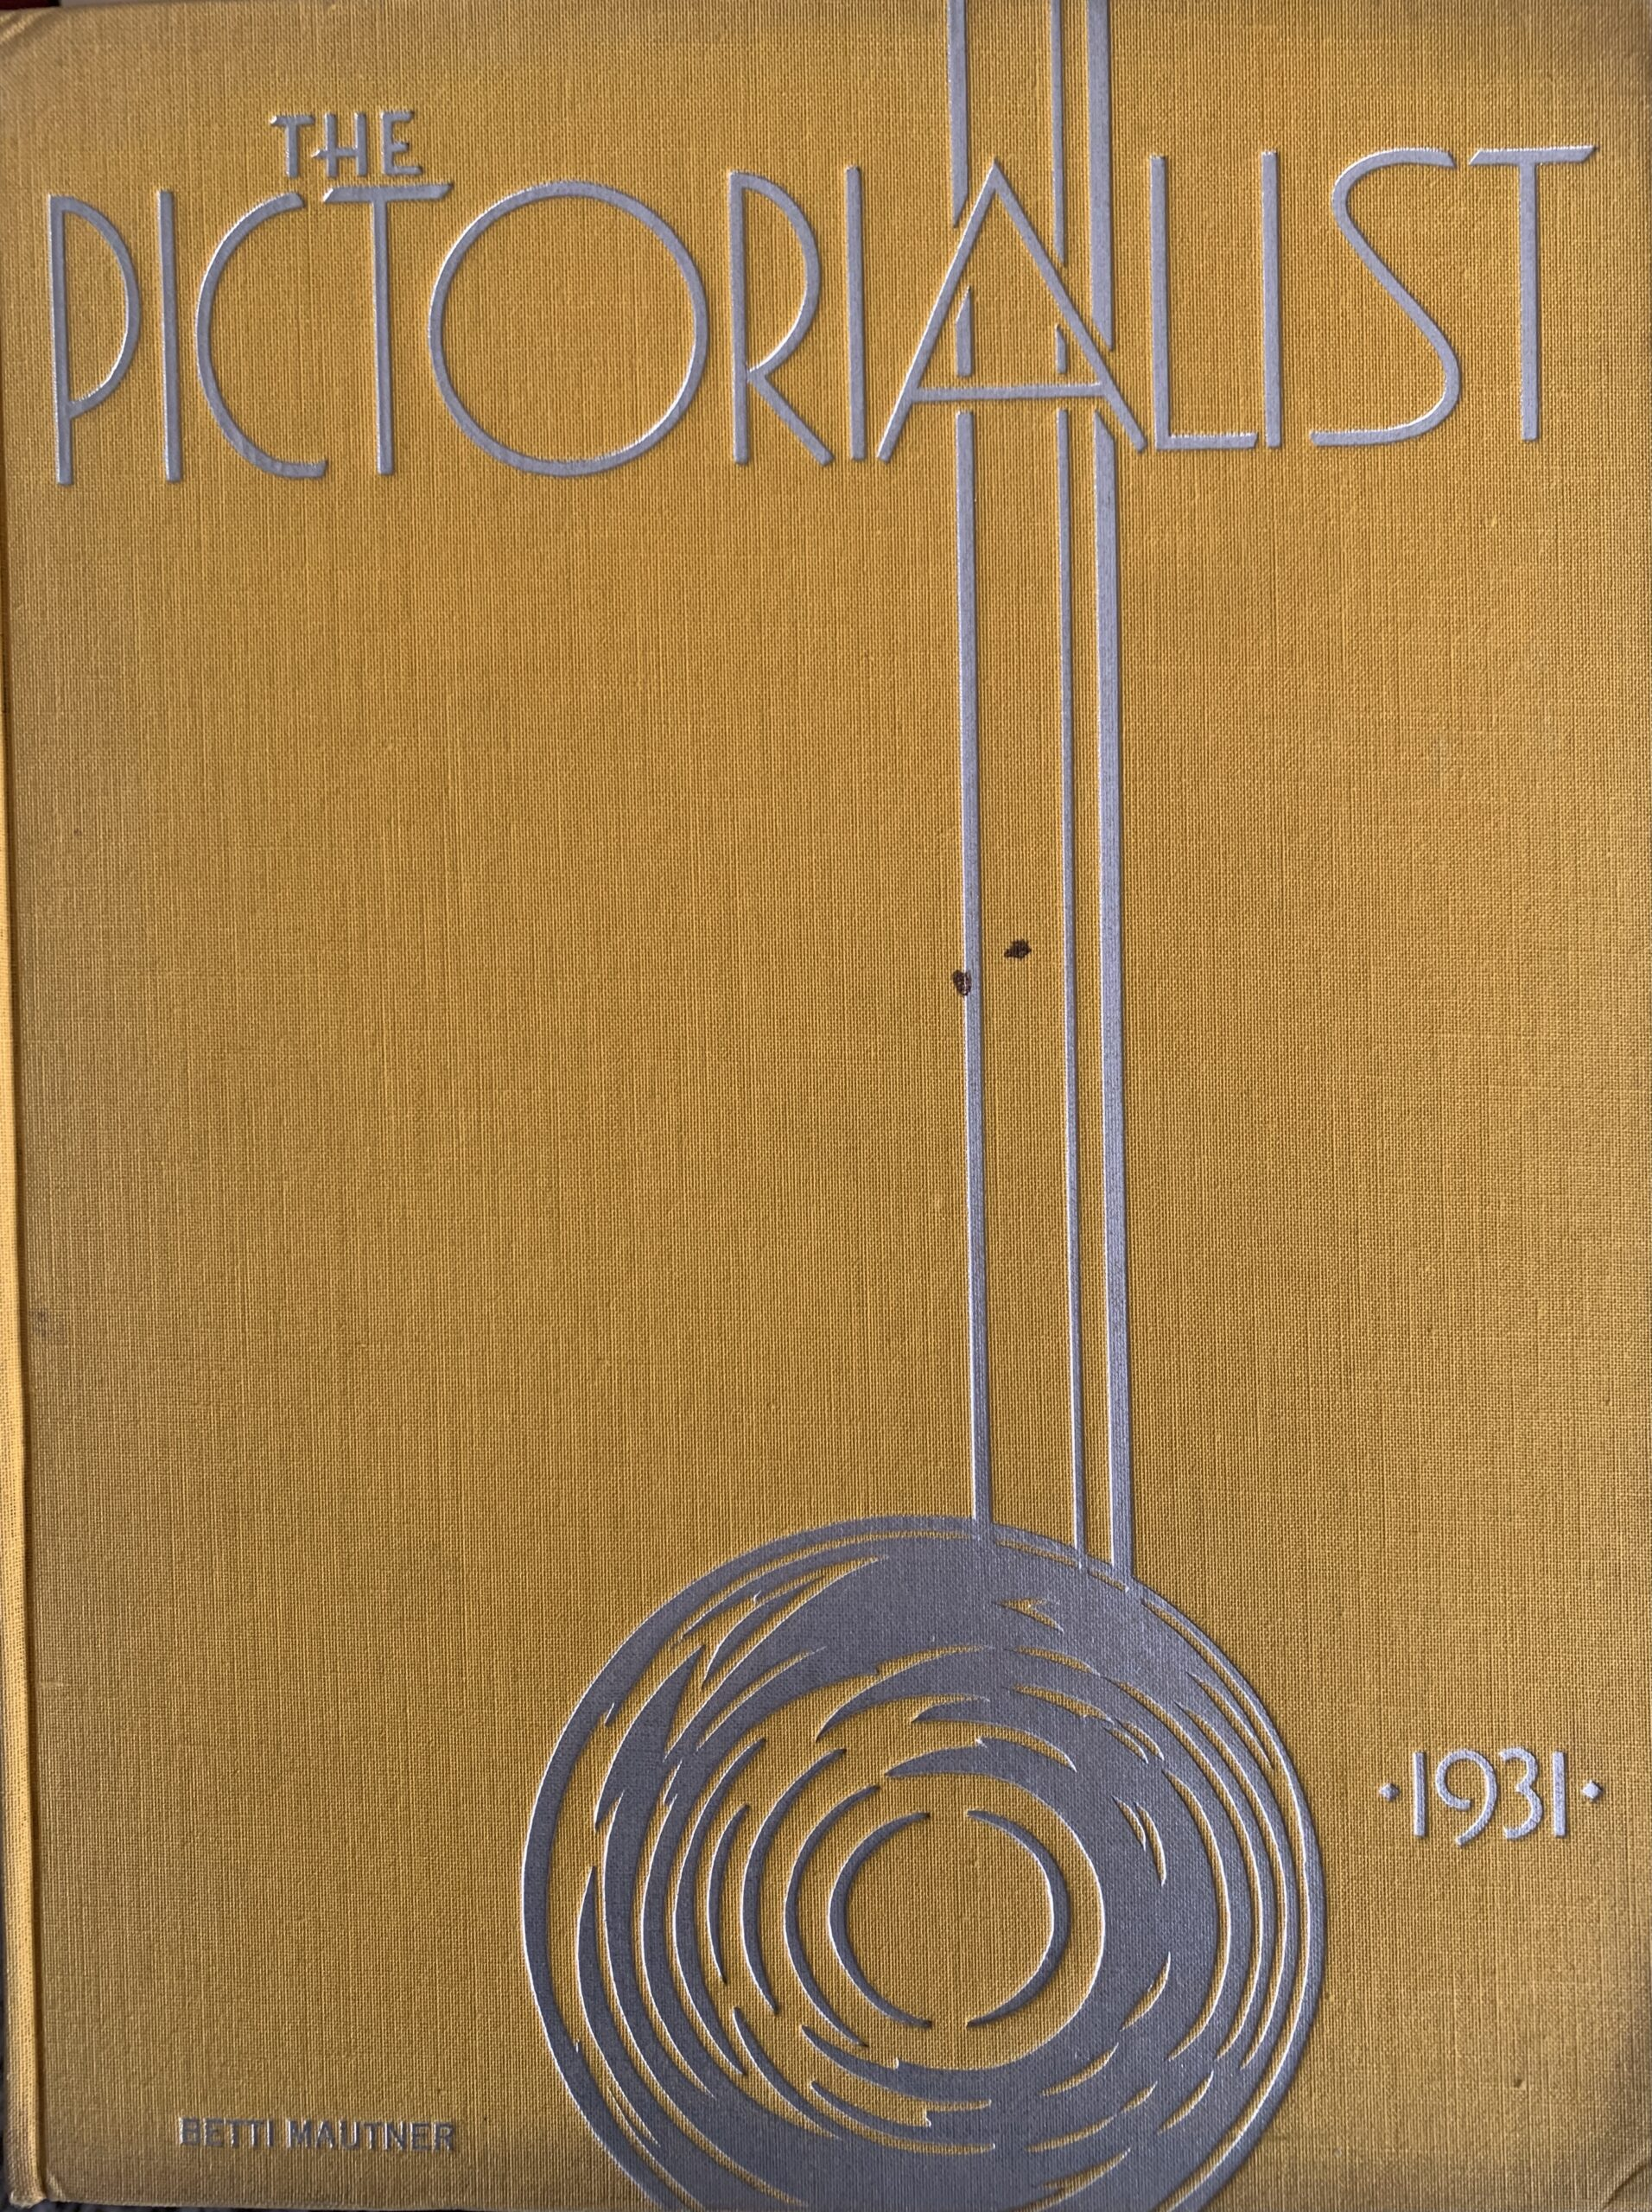 The Pictorialist photobook by Betti Mautner. Published 1931. Image courtesy of James Hyman. The yellow cover of the book is seen.